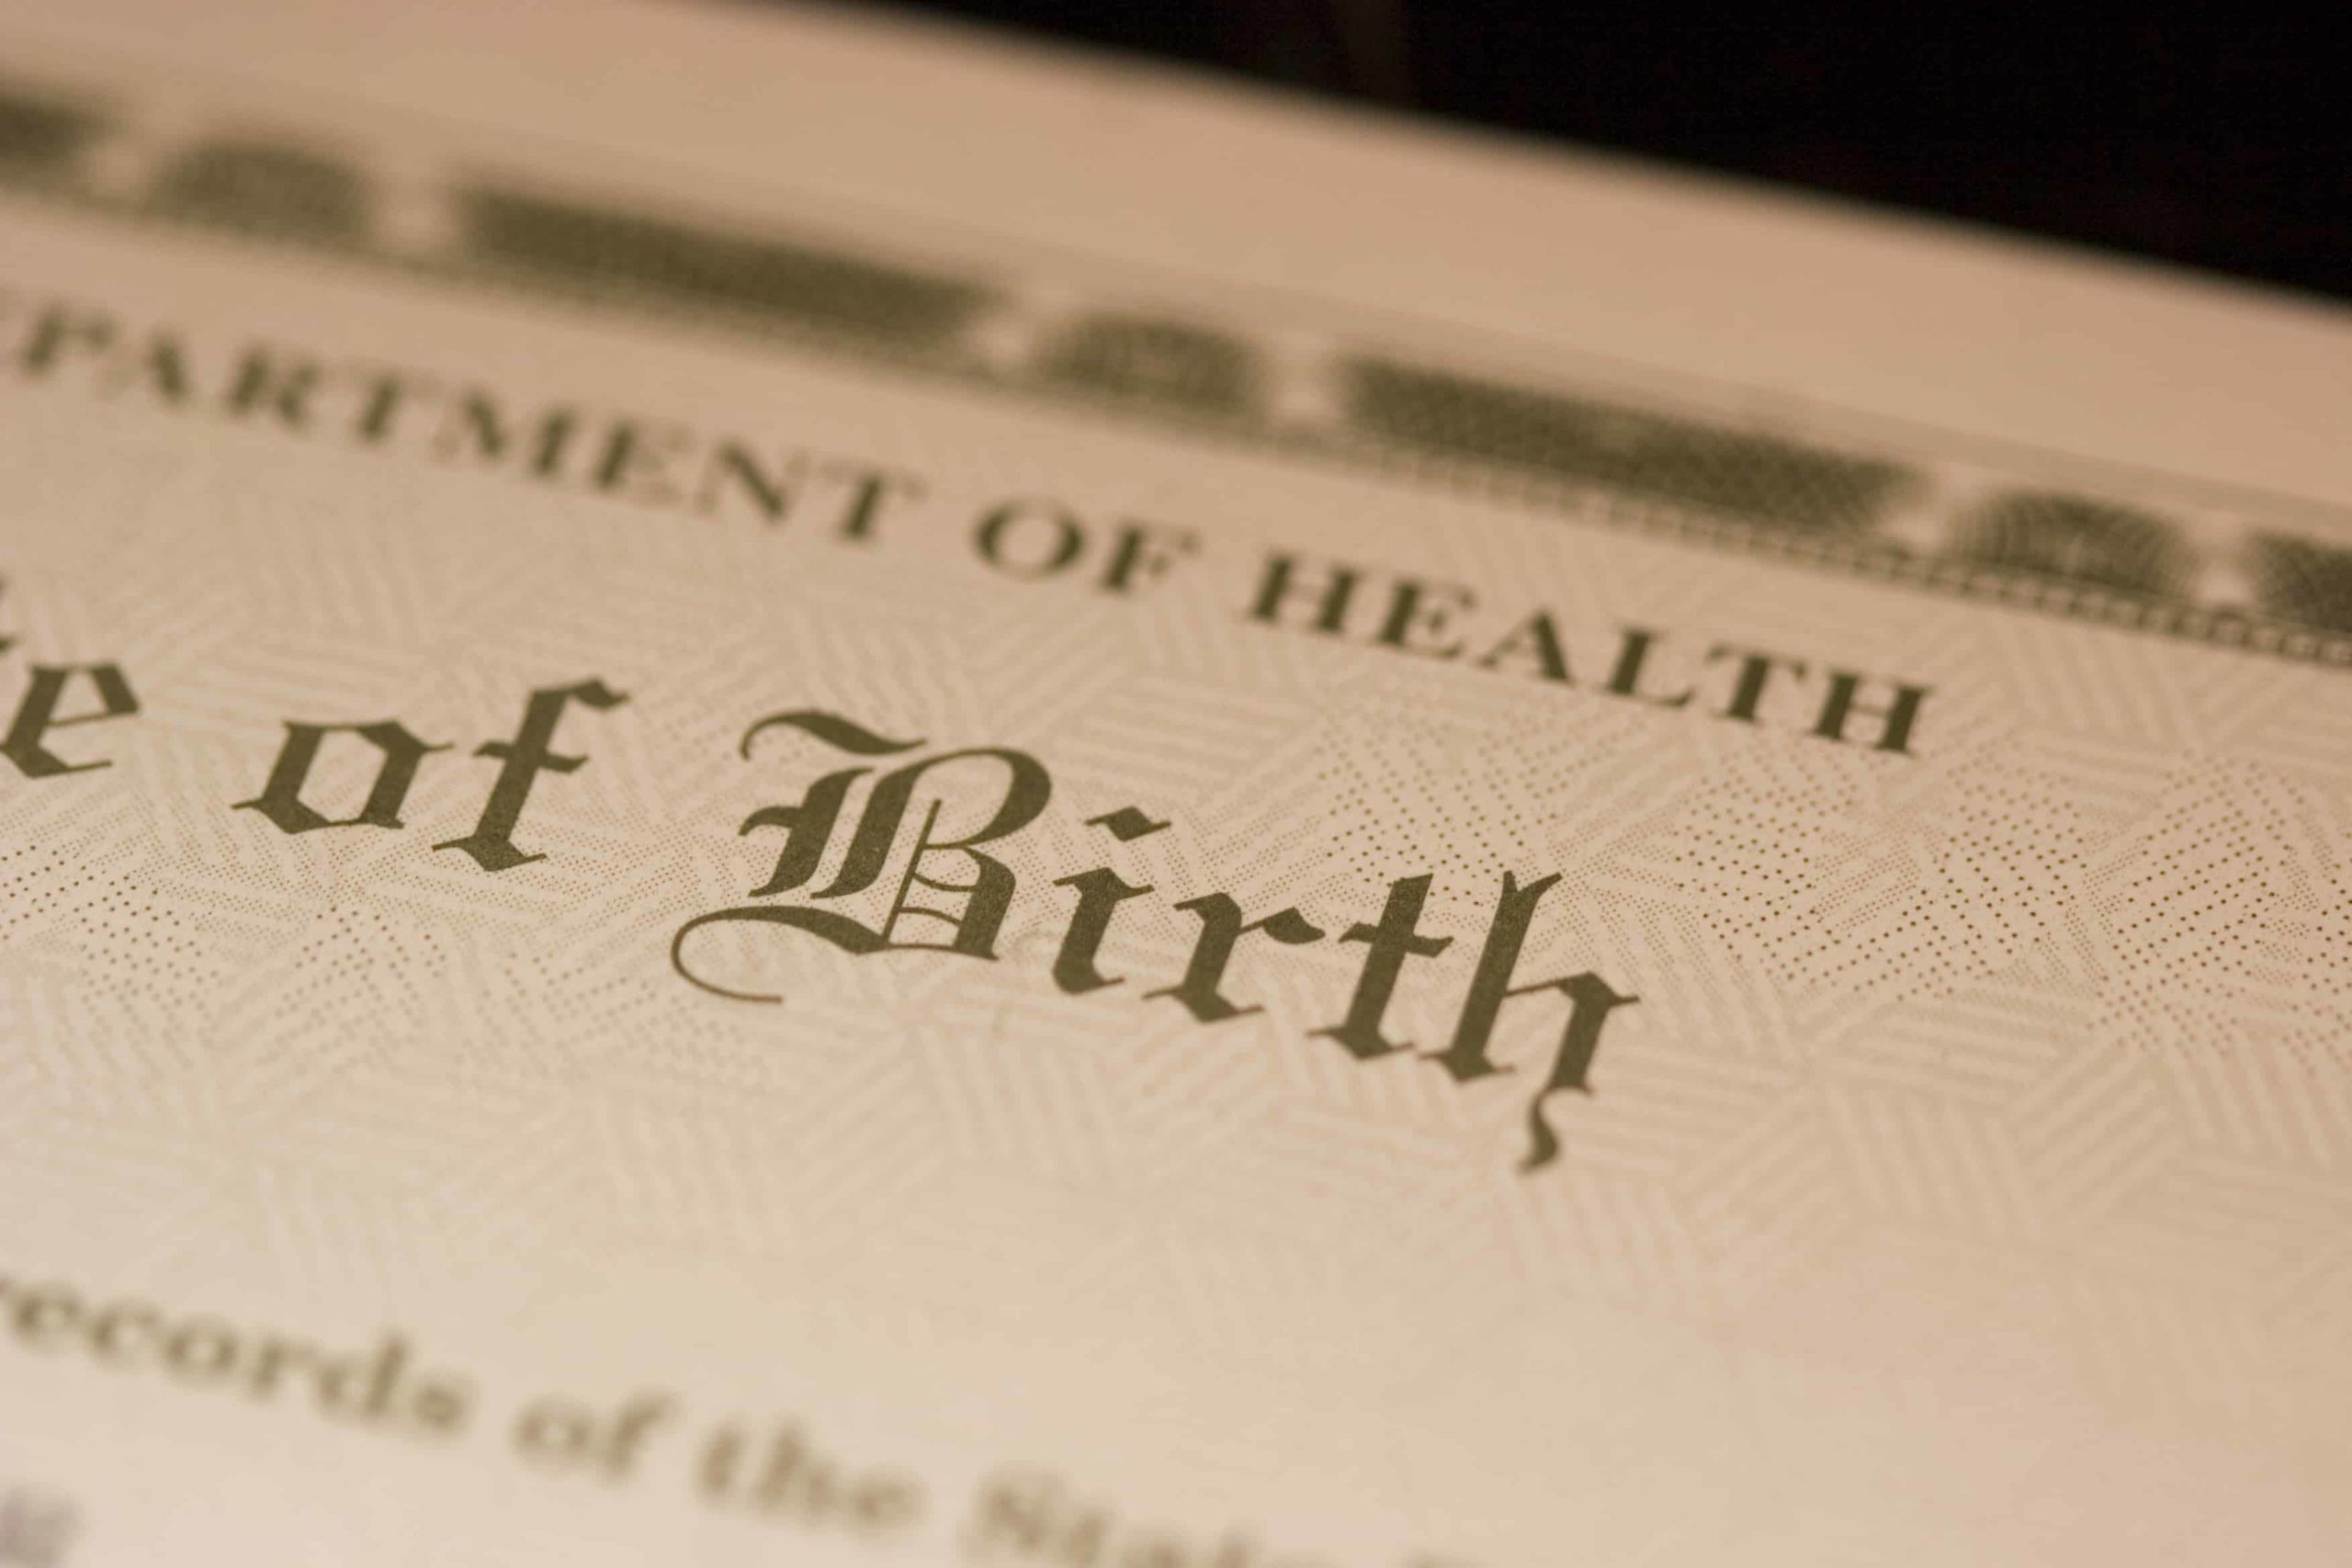 buy birth certificate online